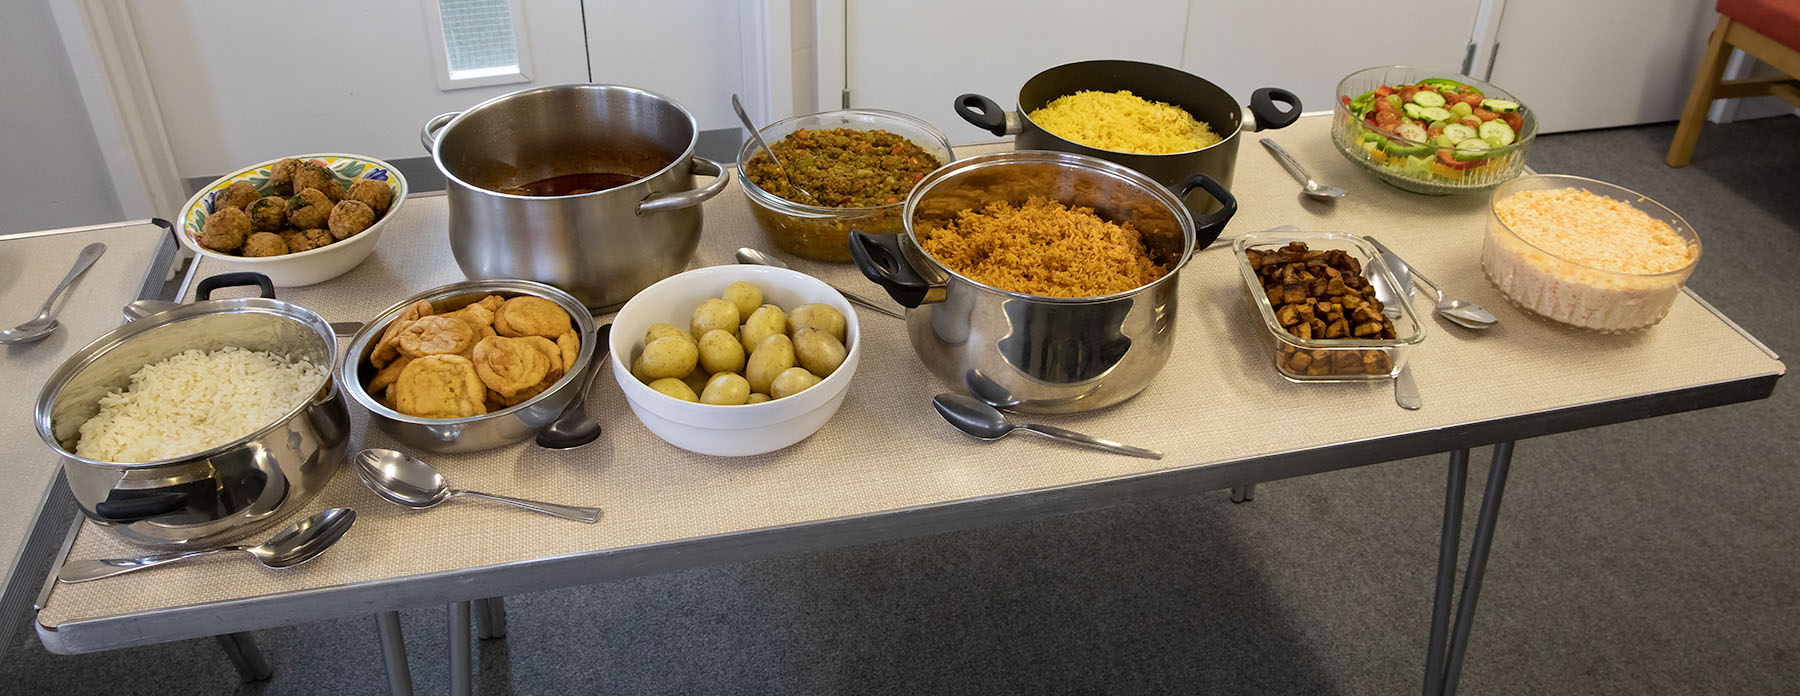 Table of food set out for fellowship meal